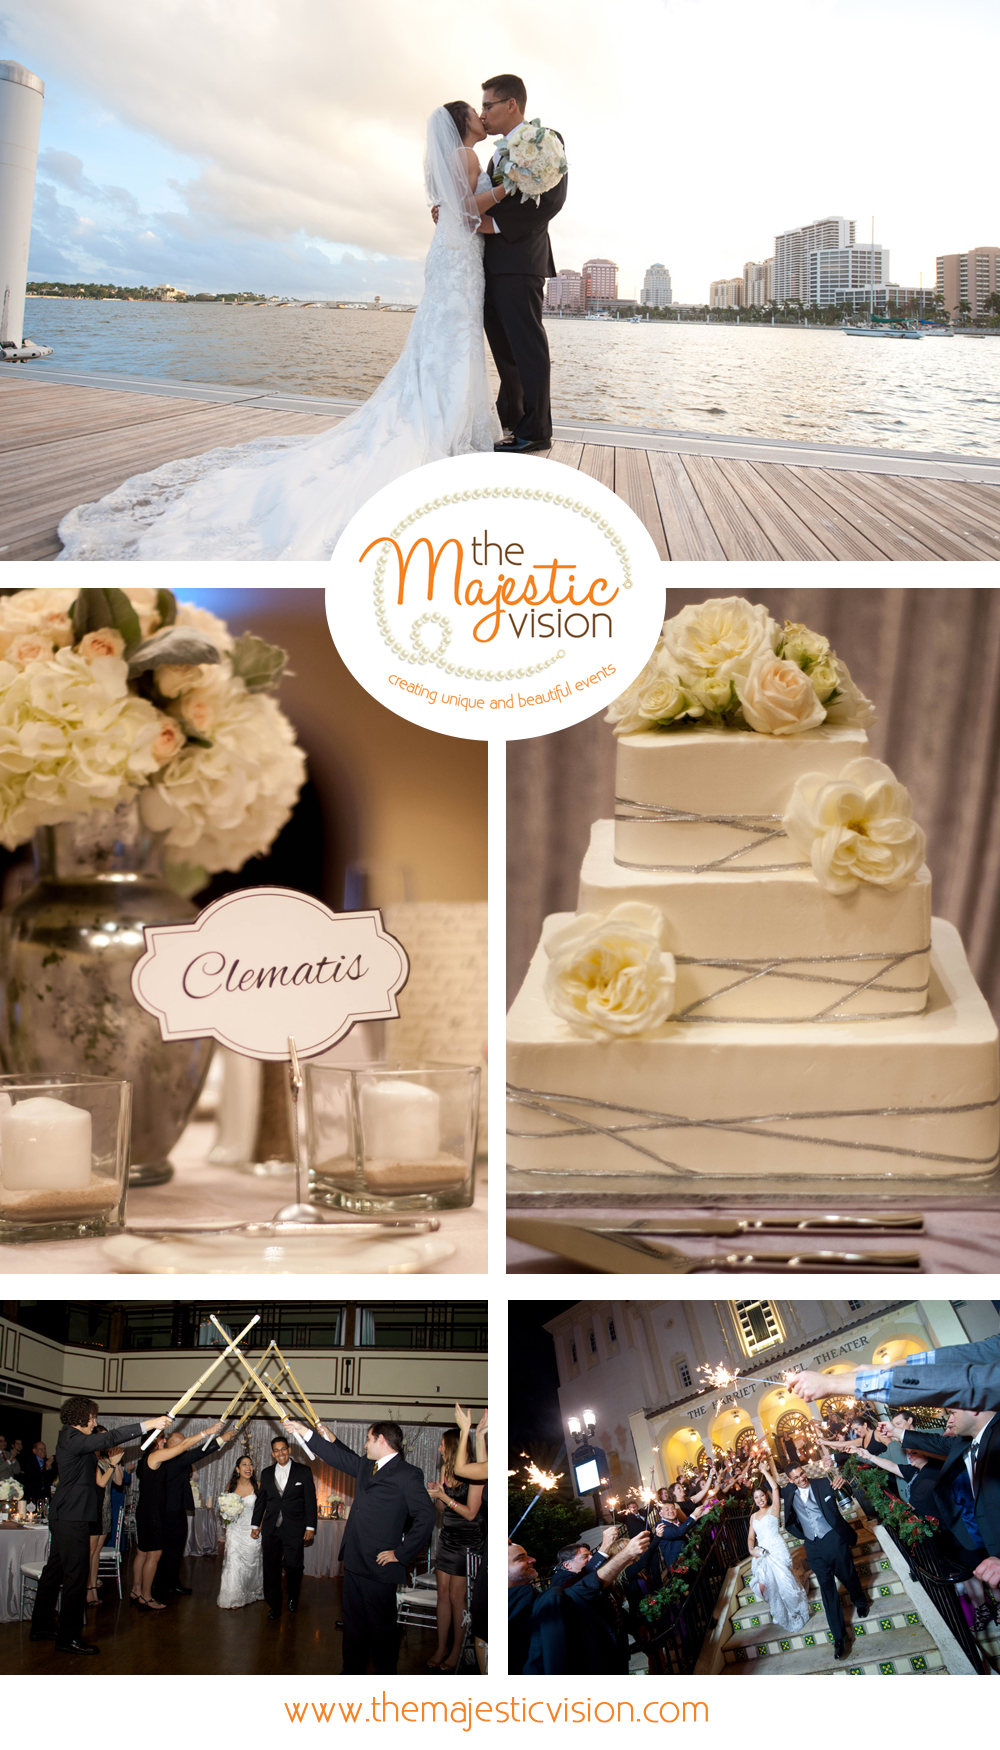 Elegant Silver and White Wedding | The Majestic Vision Wedding Planning |Harriet Himmel Theater in Palm Beach, FL | www.themajesticvision.com